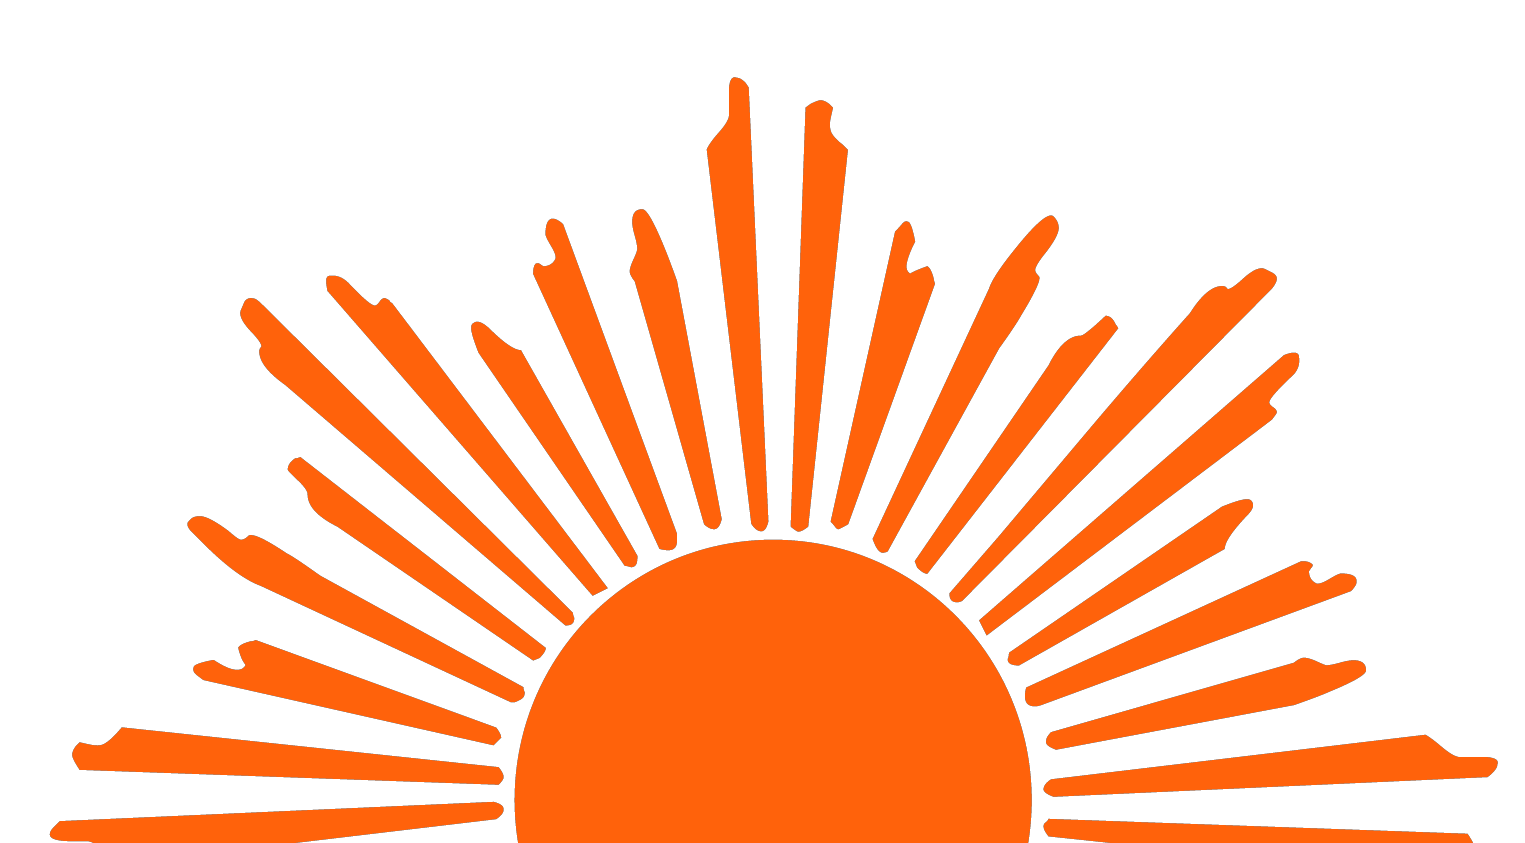 Half Sun With Rays PNG Transparent Half Sun With Rays.PNG.